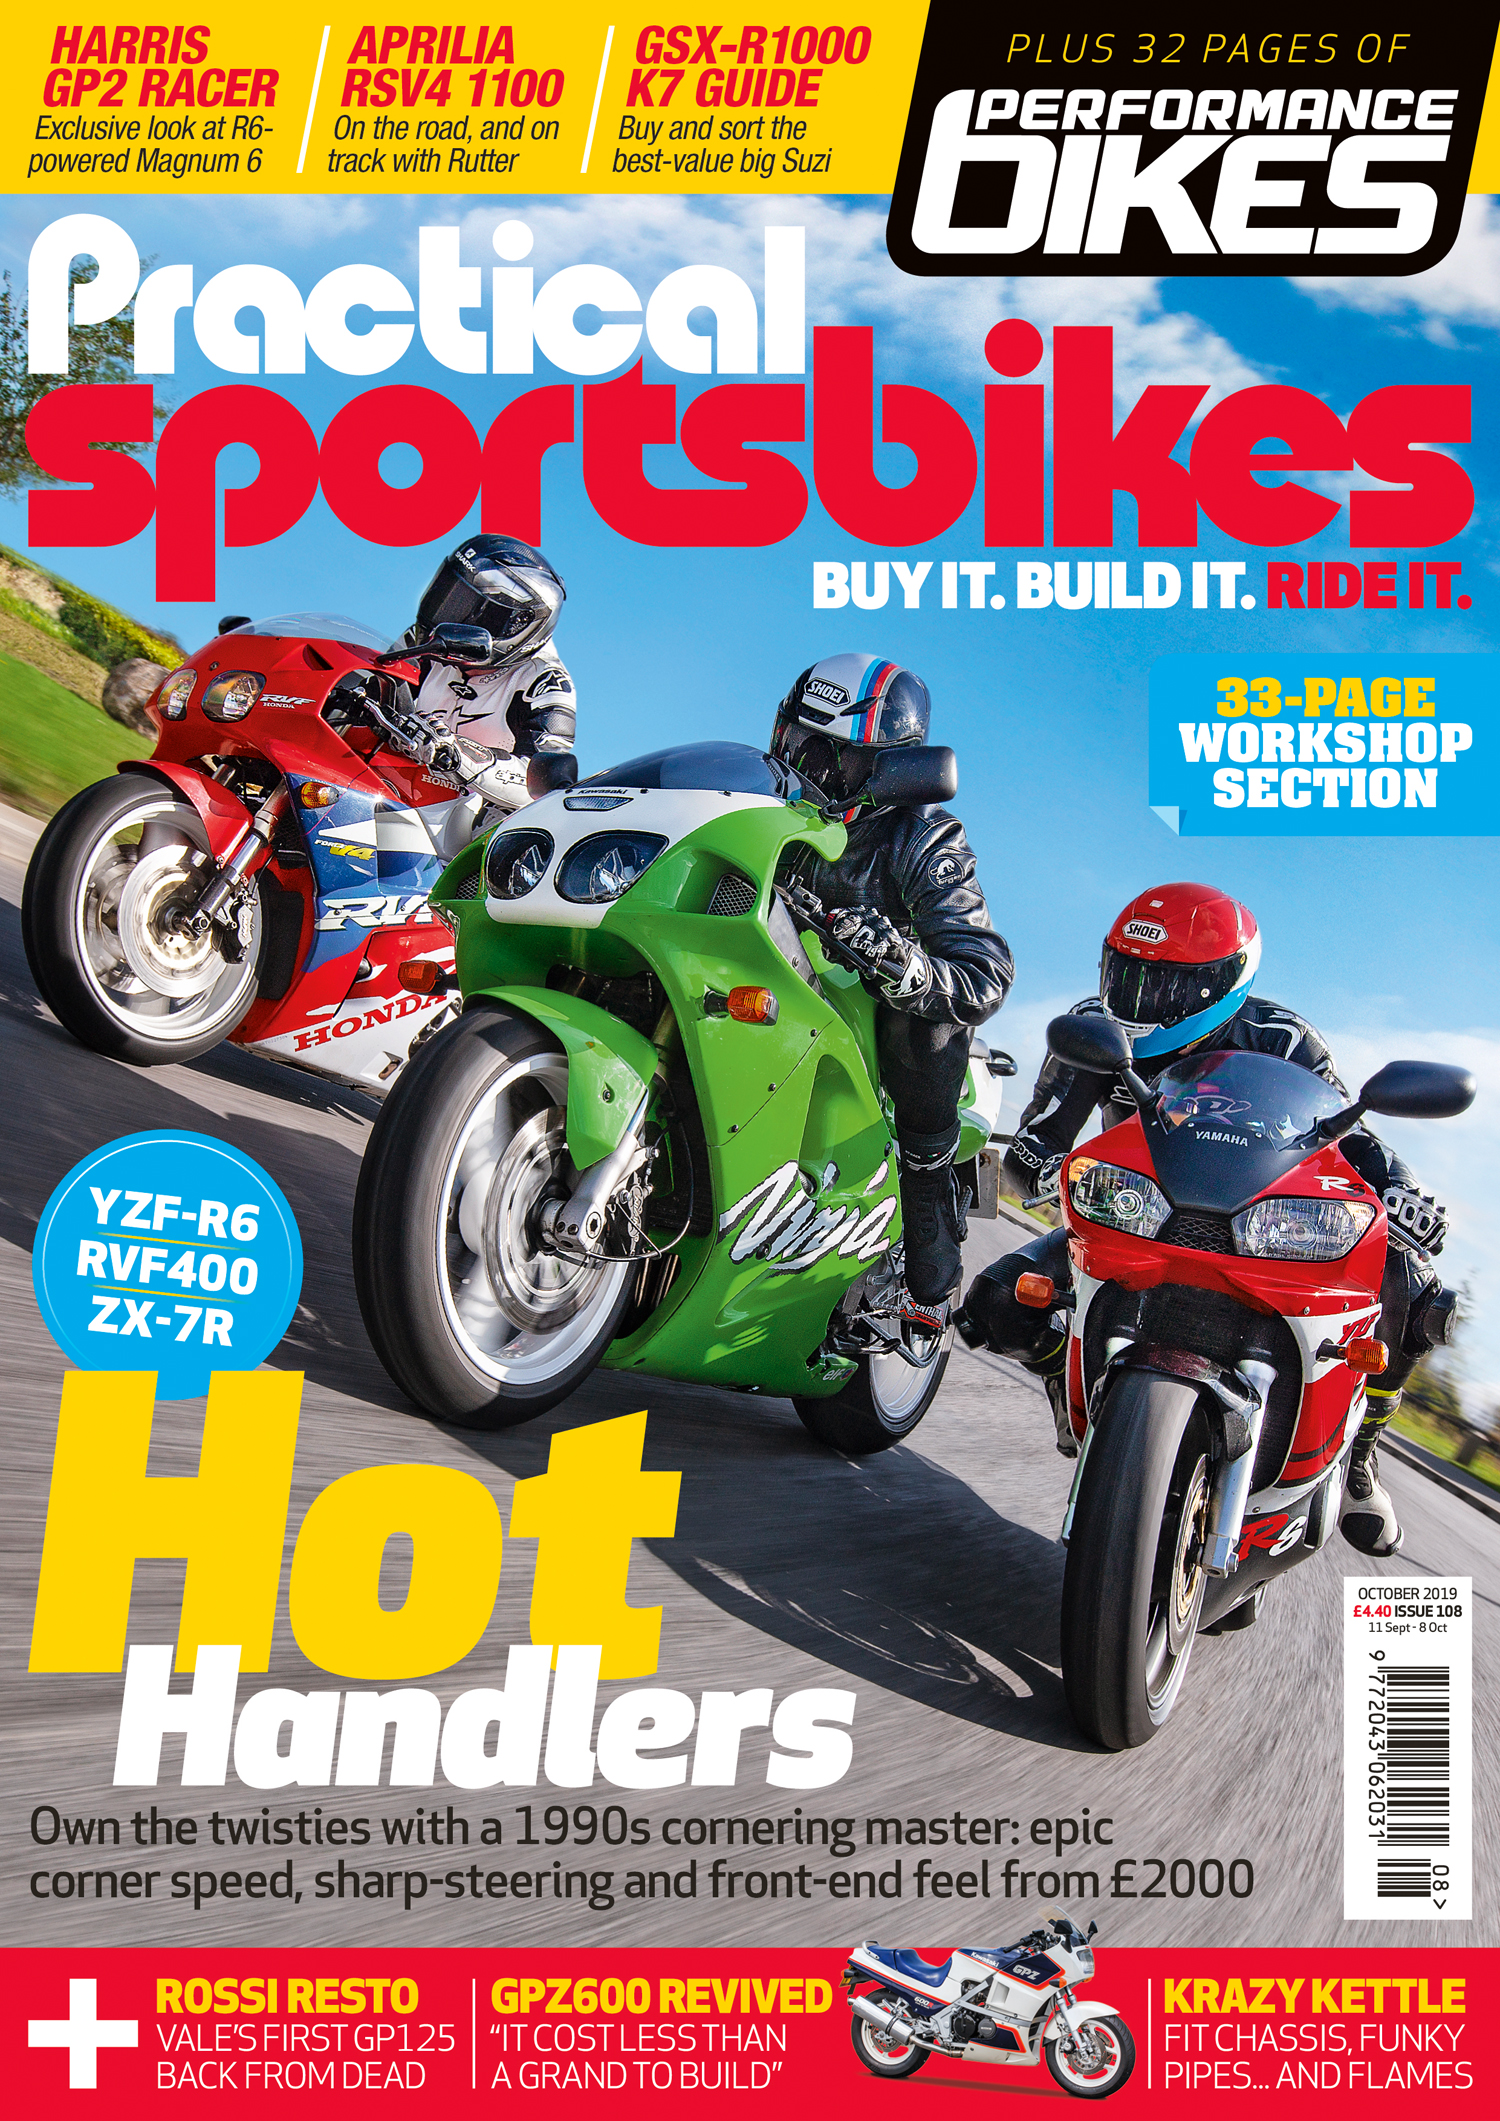 PS COVER OCT 19-1500.jpg